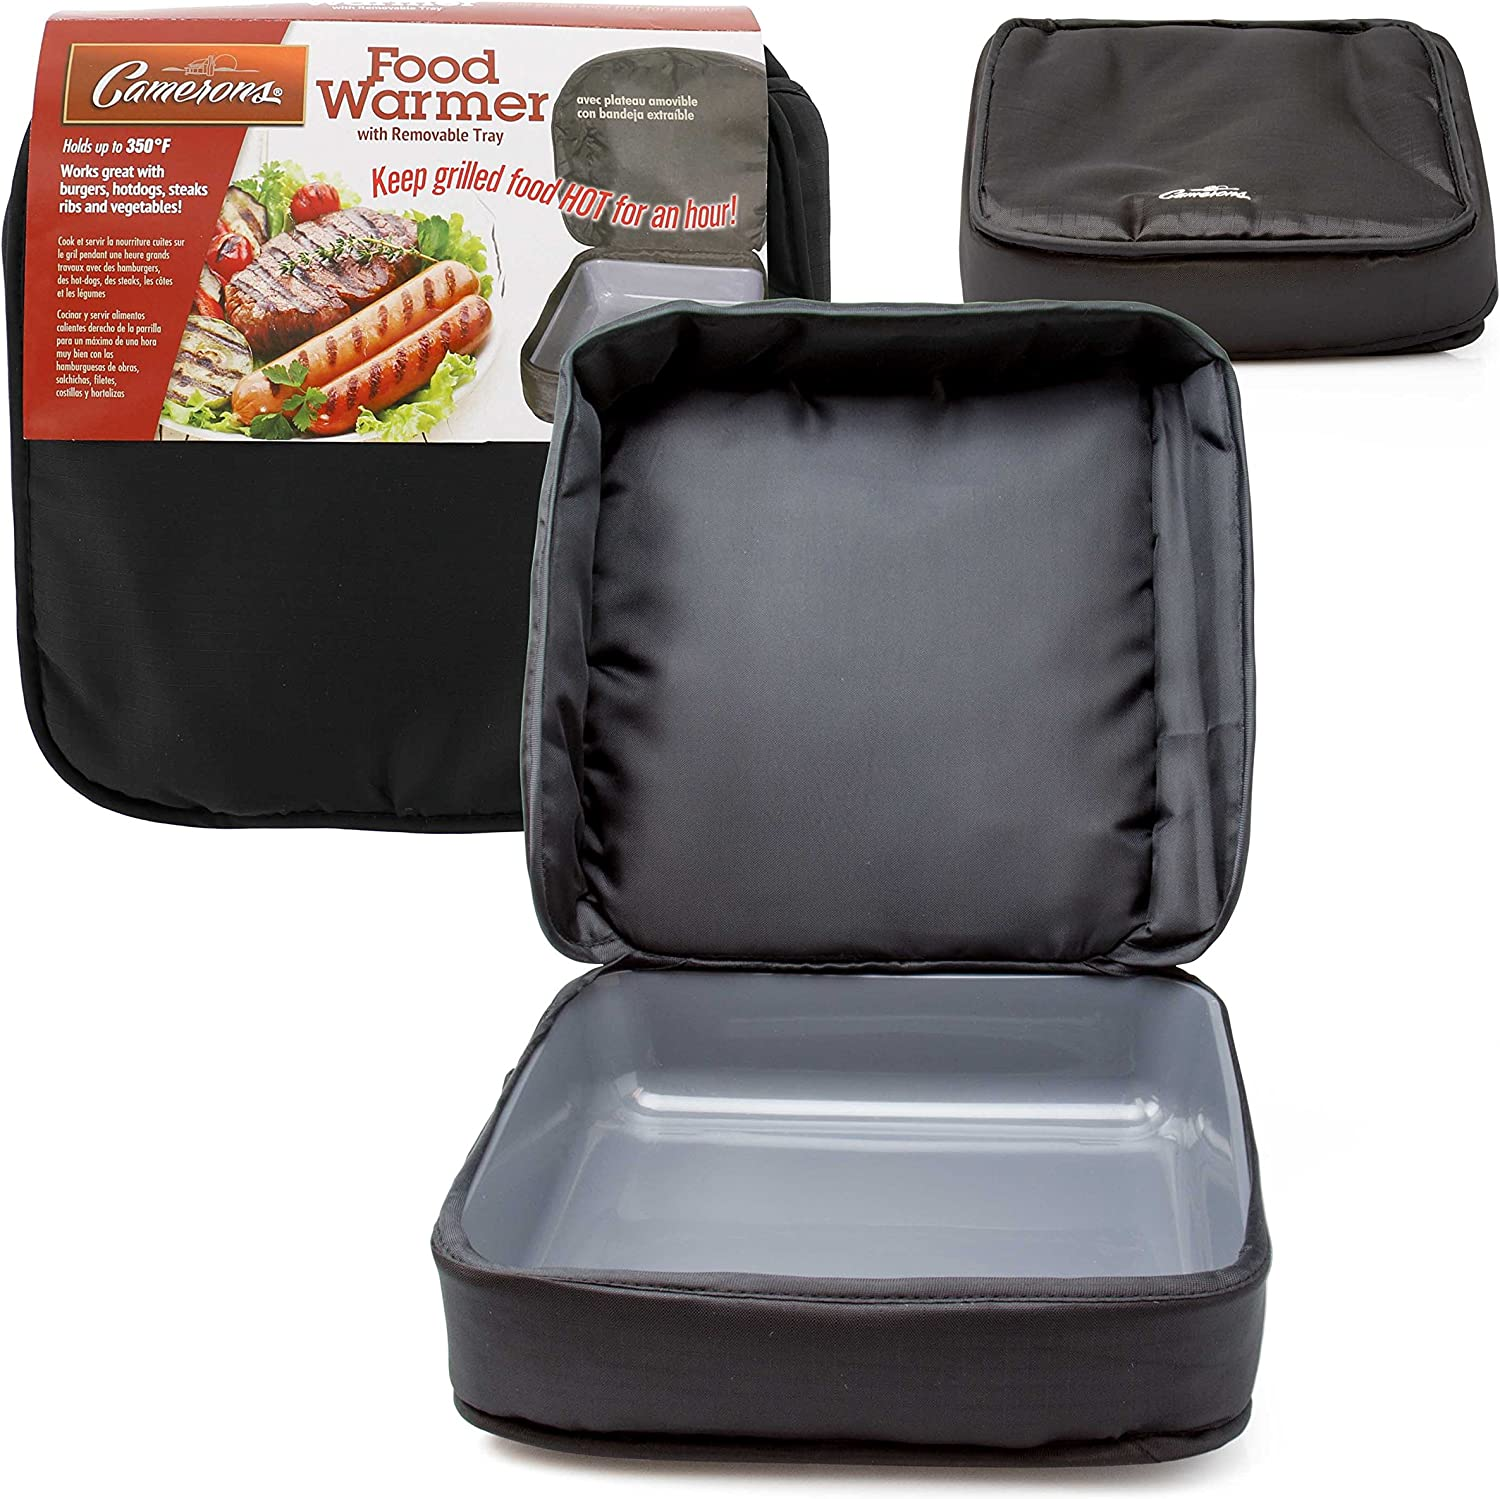 Grill Warmer - Portable Food Carrier - Keeps Food Right Off The Grill Warm Up To One Hour